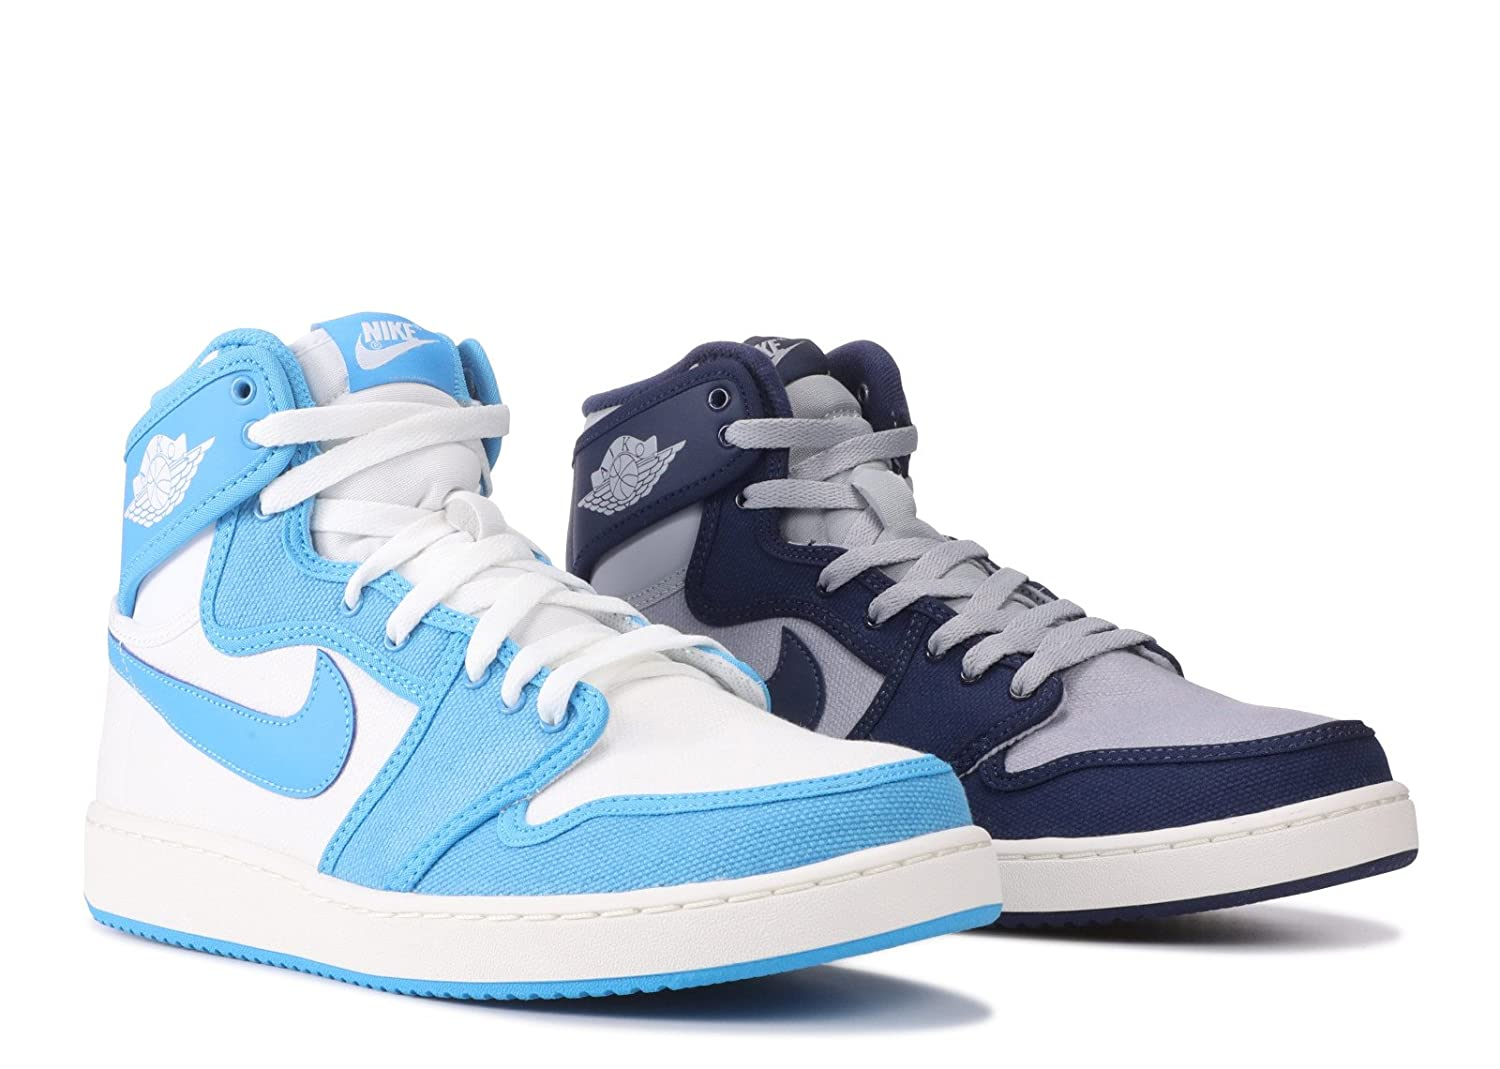 sports shoes db302 9eba4 Nike Men's - Air Jordan KO High OG Rivalry Pack Limited ...